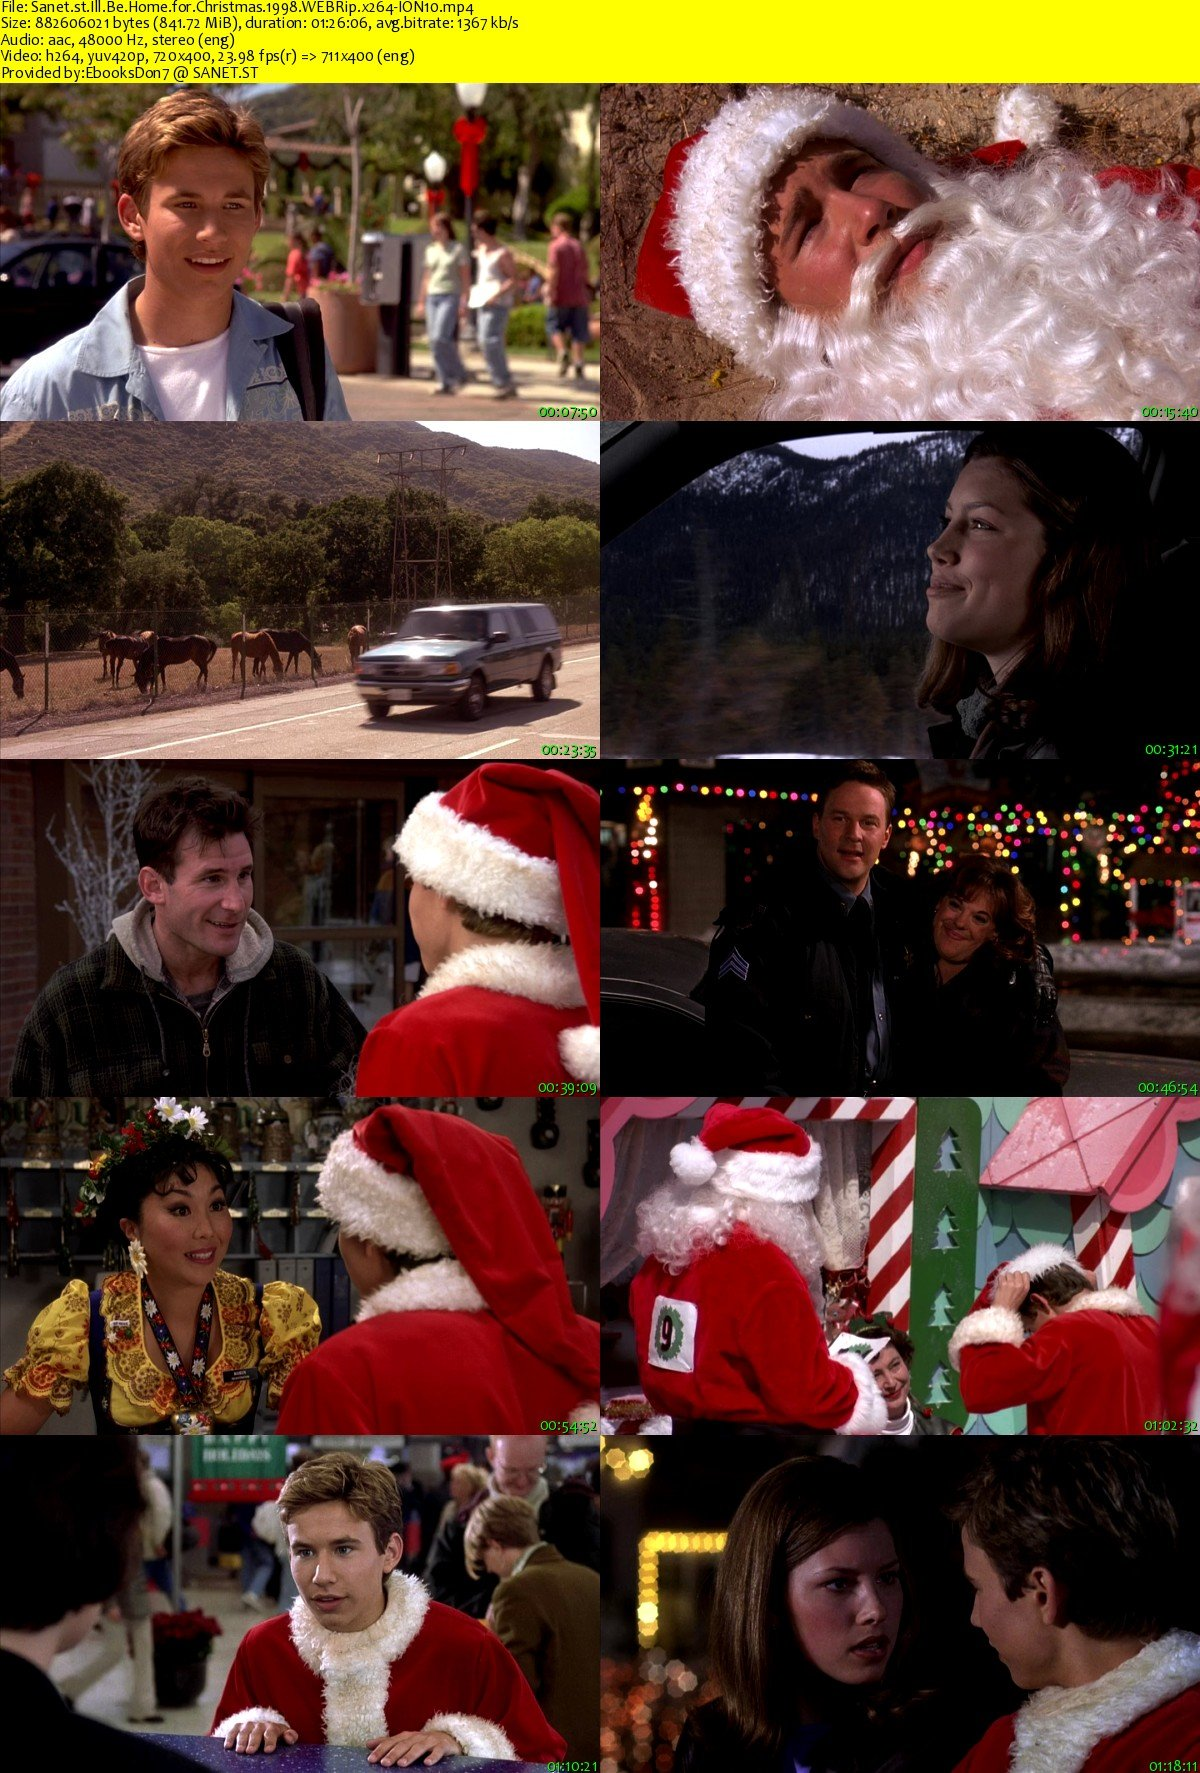 Ill Be Home For Christmas 1998.Download Ill Be Home For Christmas 1998 Webrip X264 Ion10